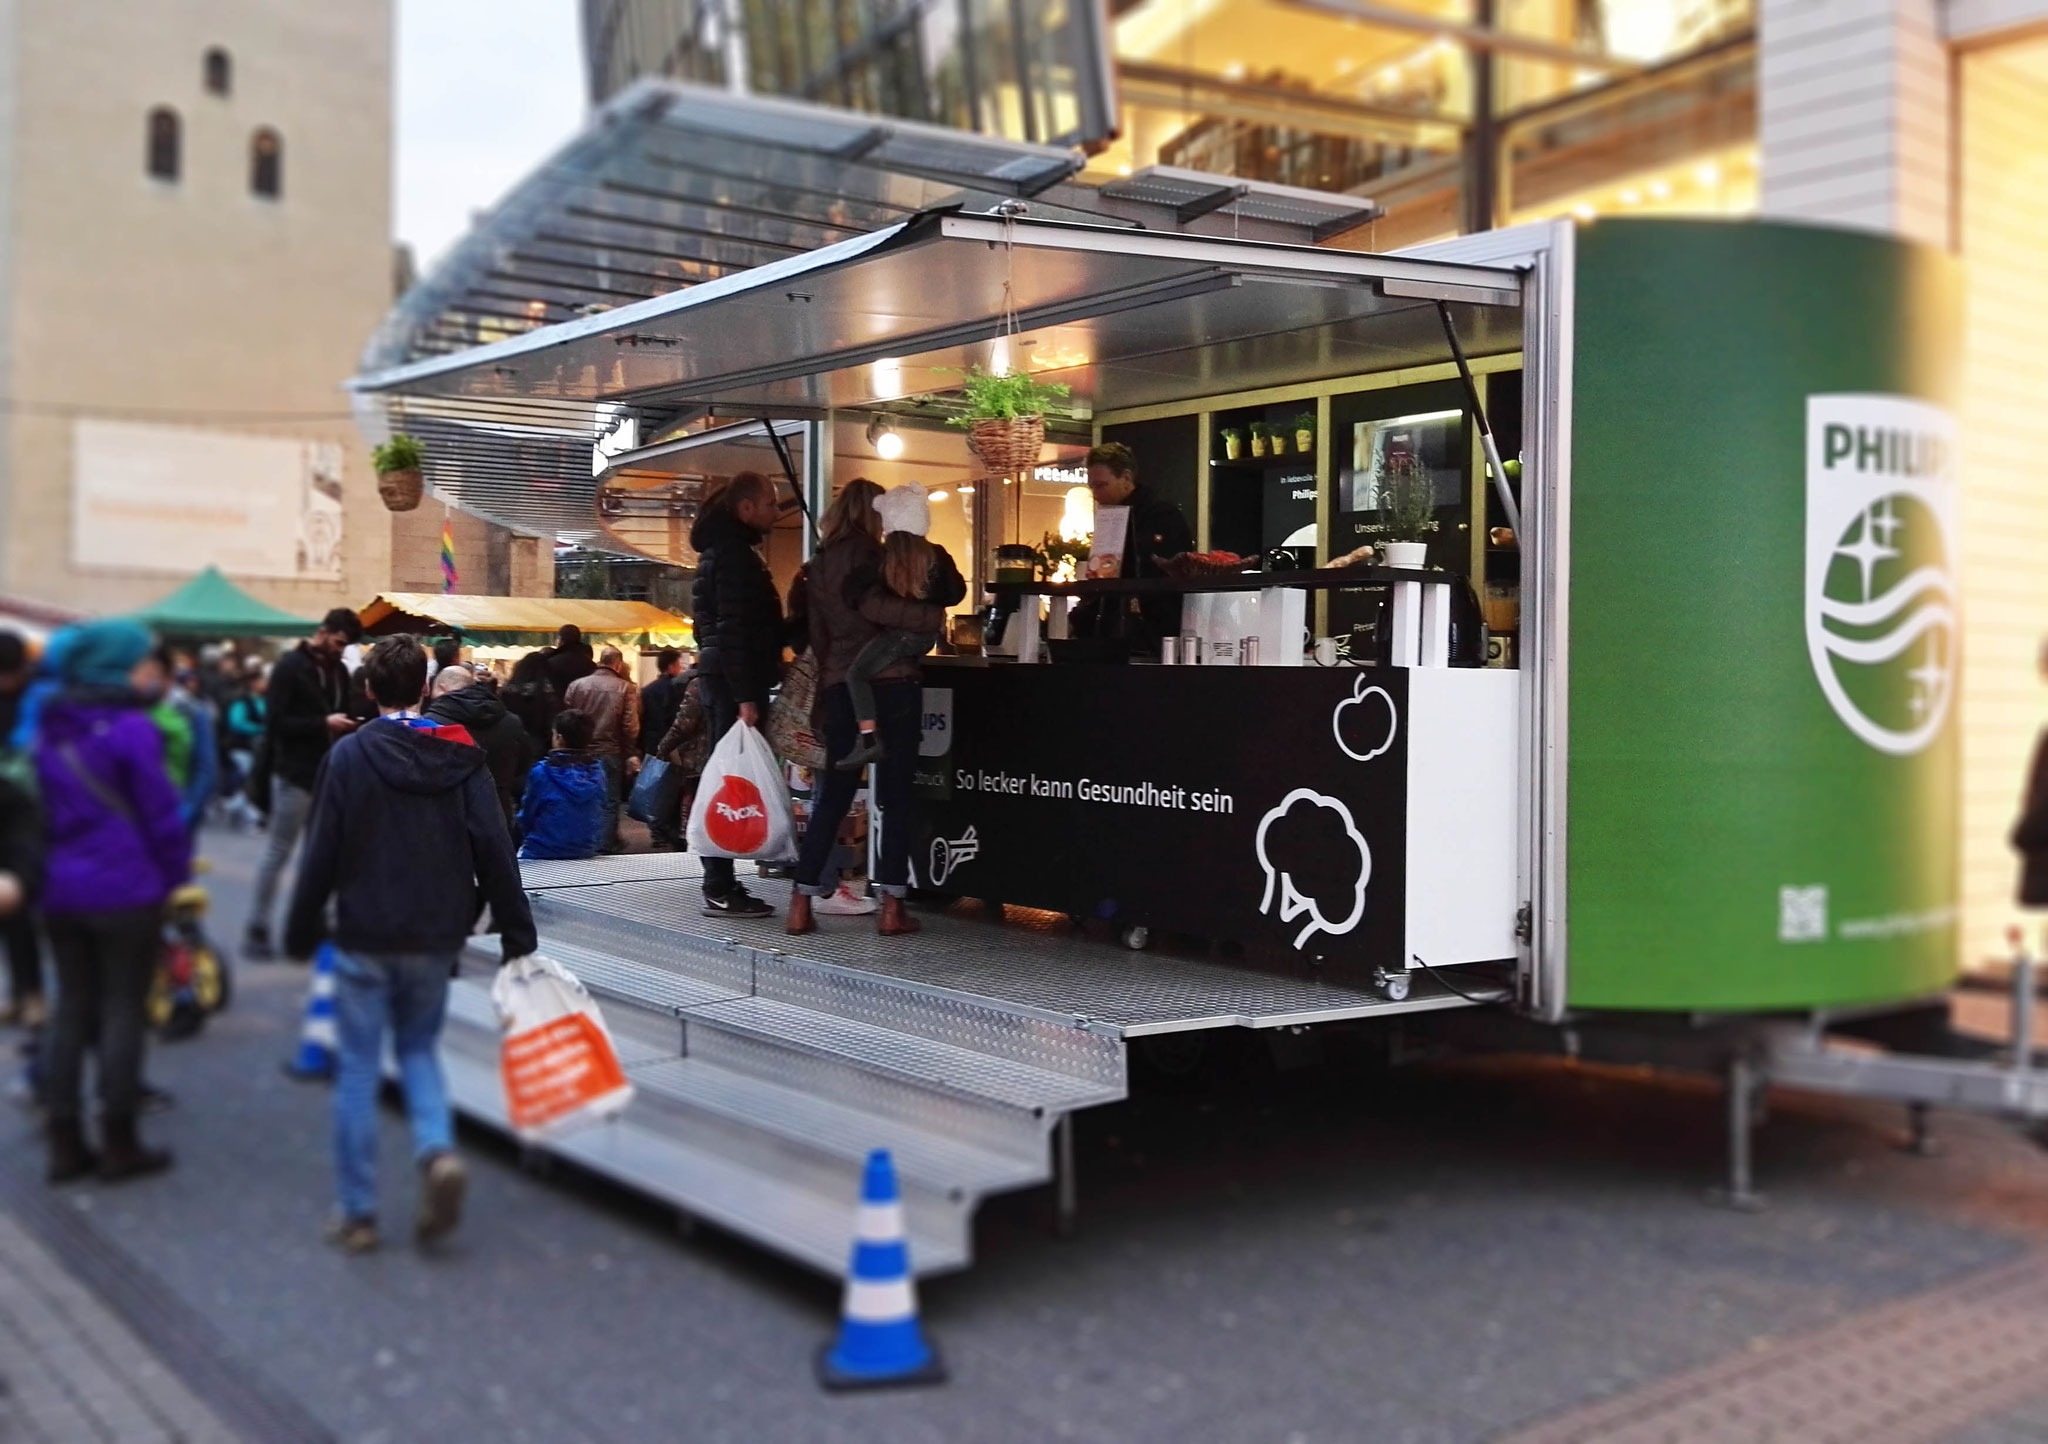 Philips Foodtruck - Roadshow